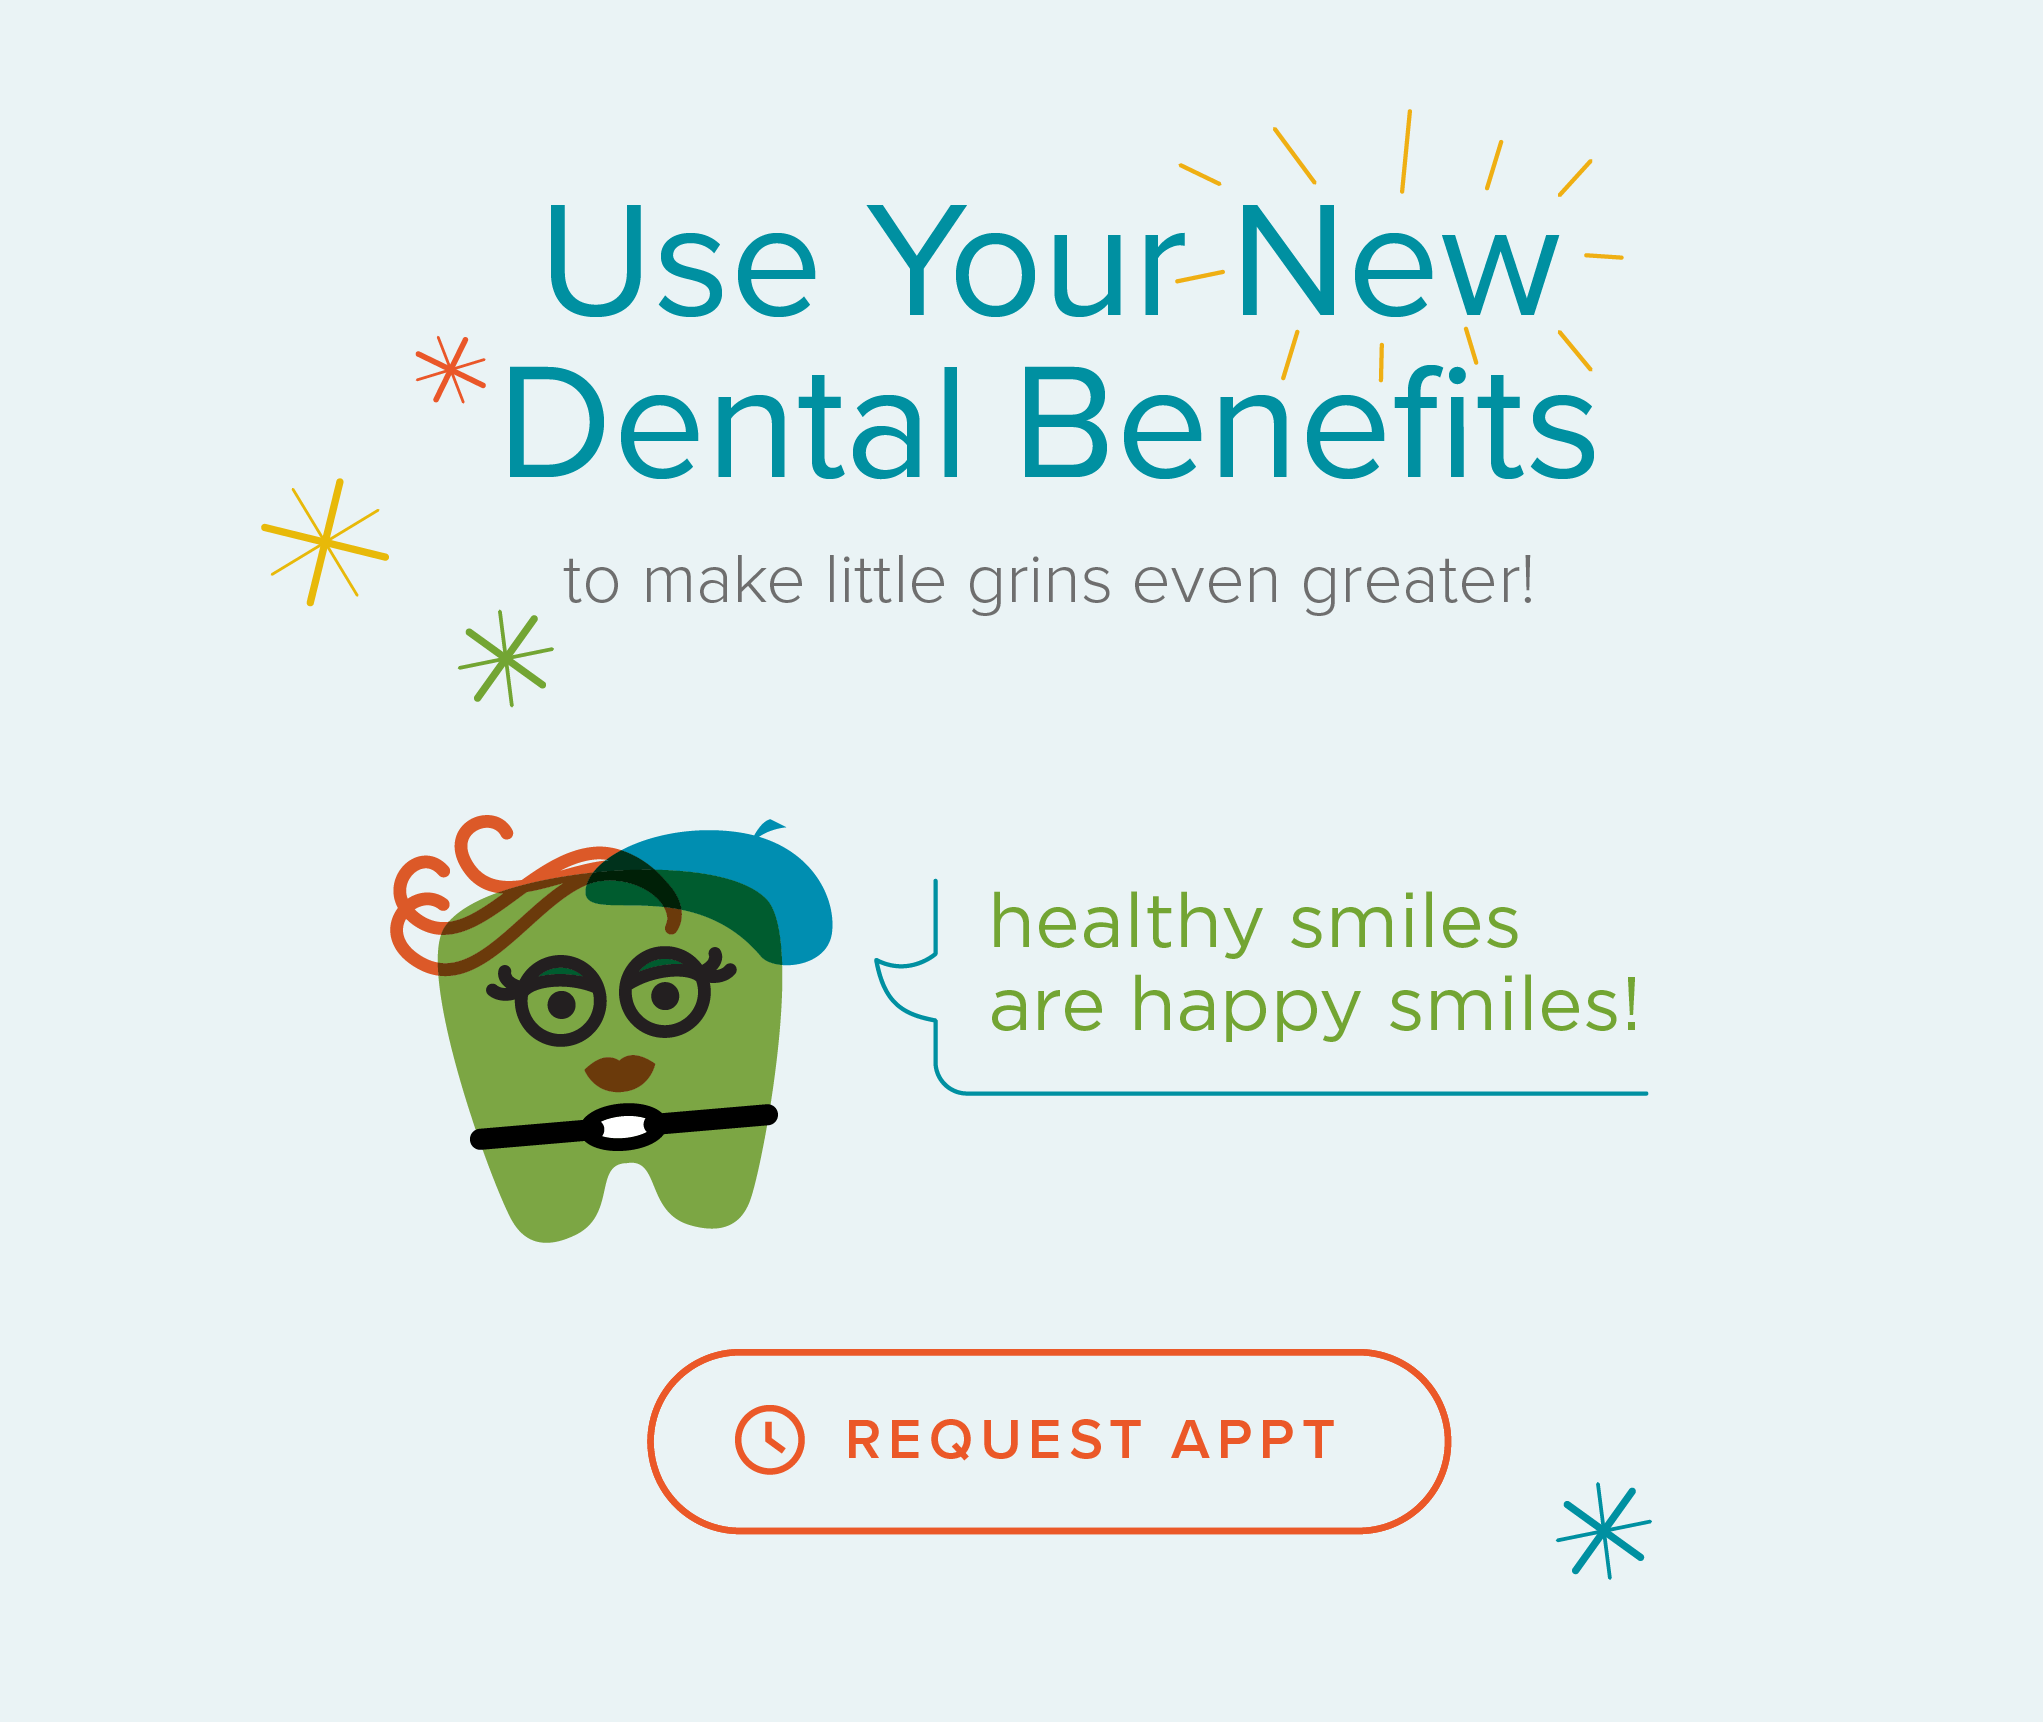 Nona Kid's Dentists - Use Your New Dental Benefits